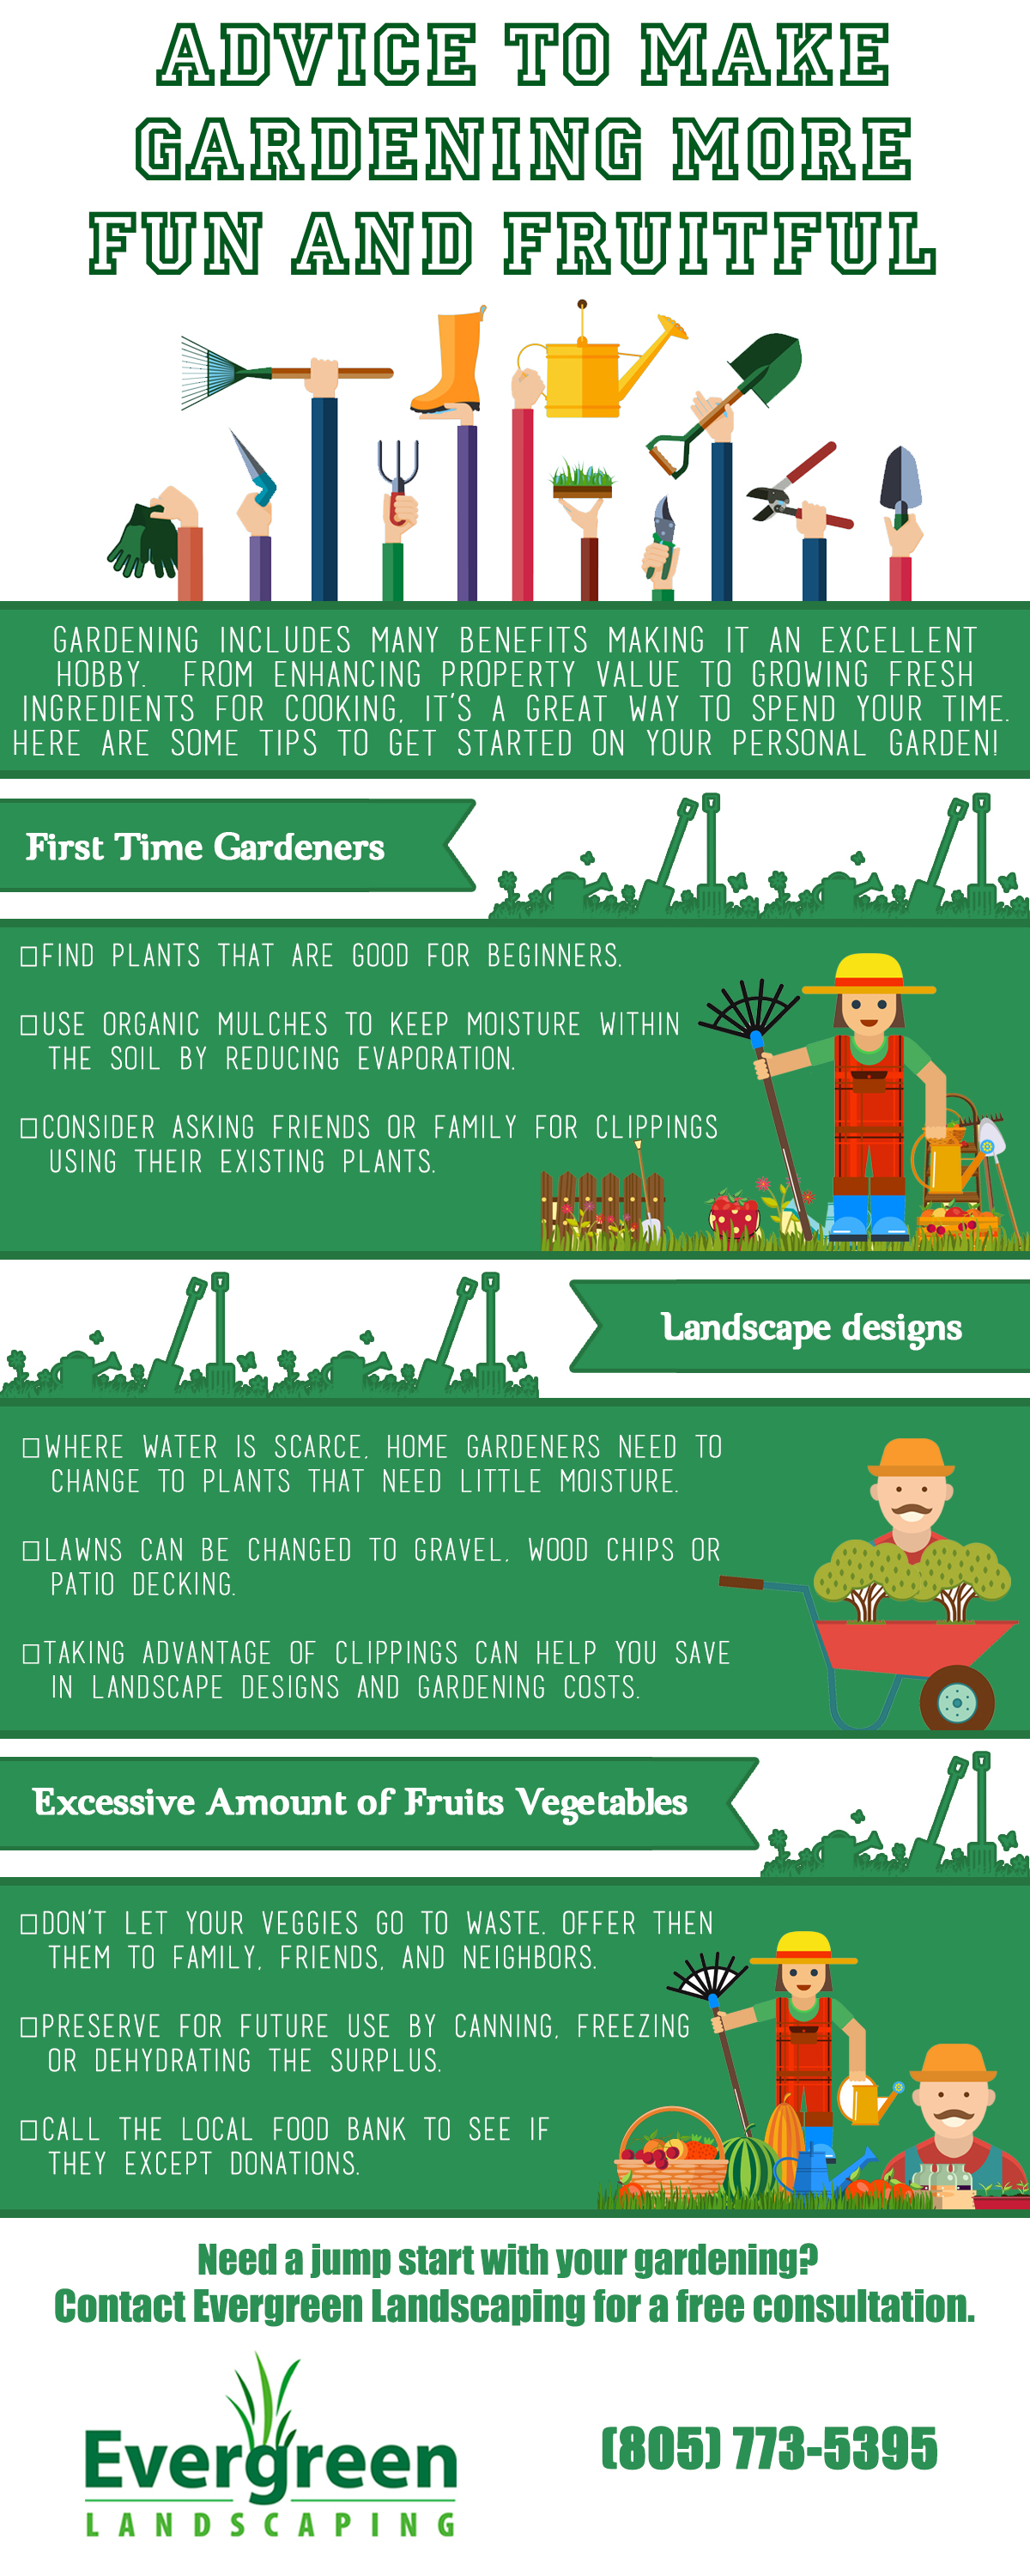 Advice To Make Gardening More Fun And Fruitful [Infographic]